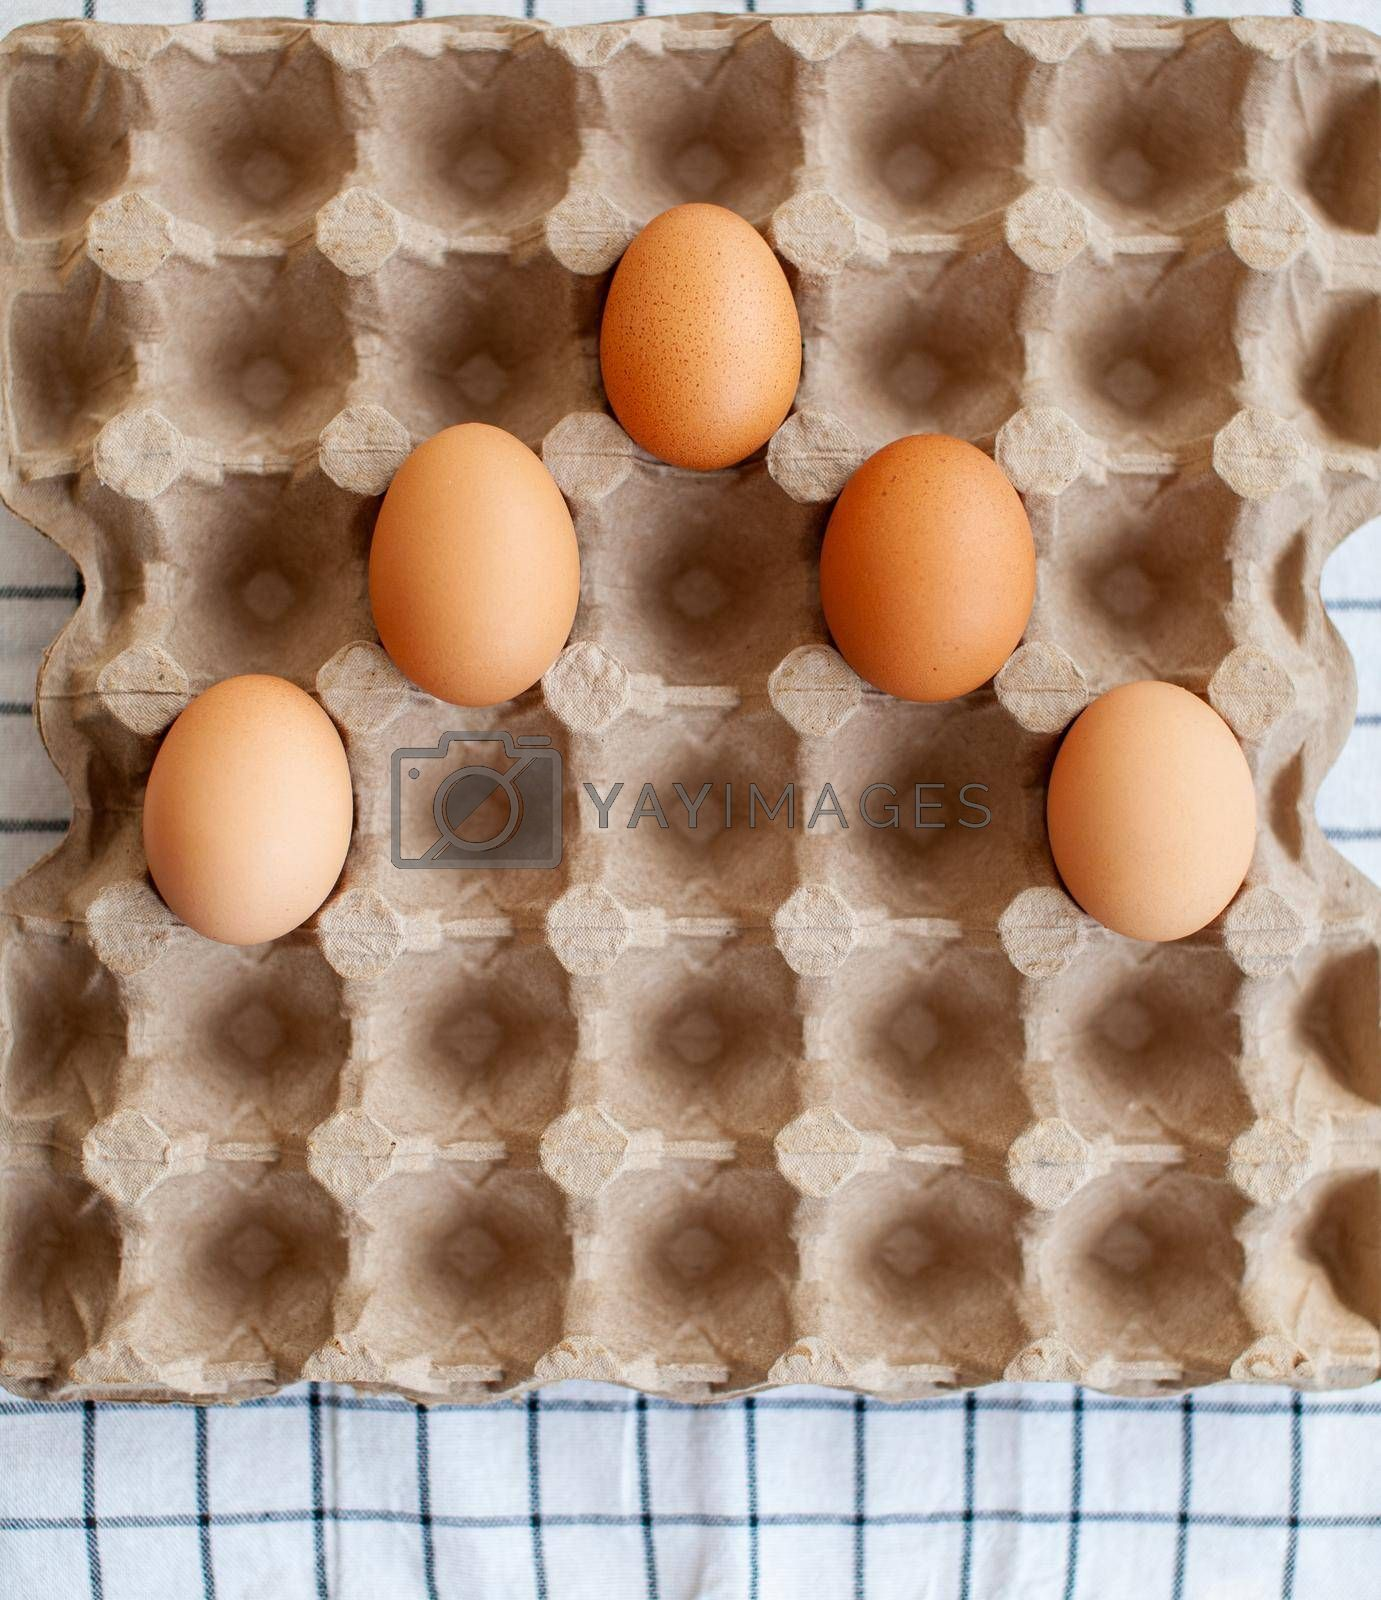 A few brown eggs among the empty cells of a large cardboard bag, a chicken egg as a valuable nutritious product, a tray for carrying and storing fragile eggs